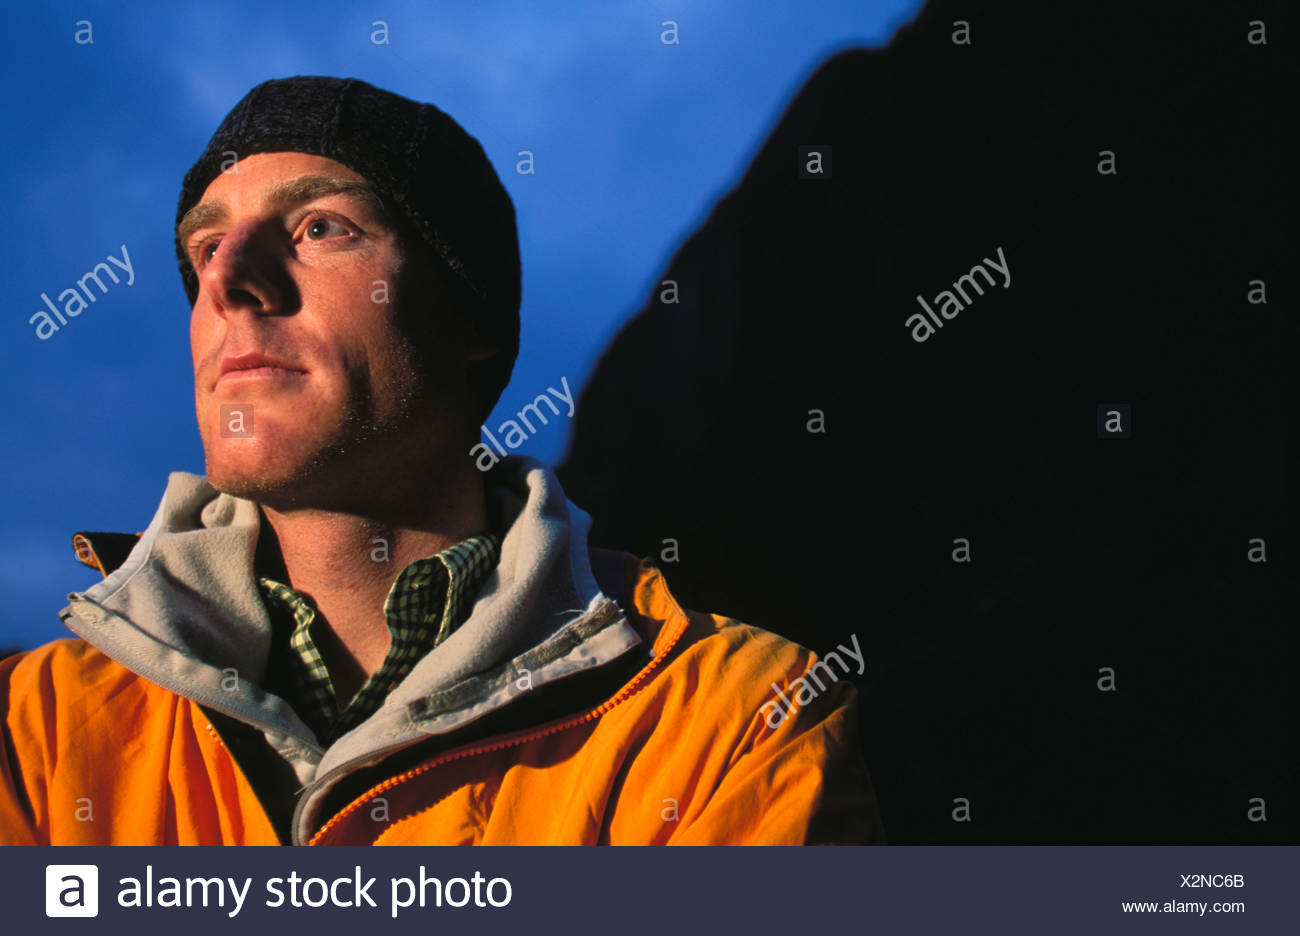 Lit headshot / portrait of a male climber, mountaineer, snowboarder. - Stock Image